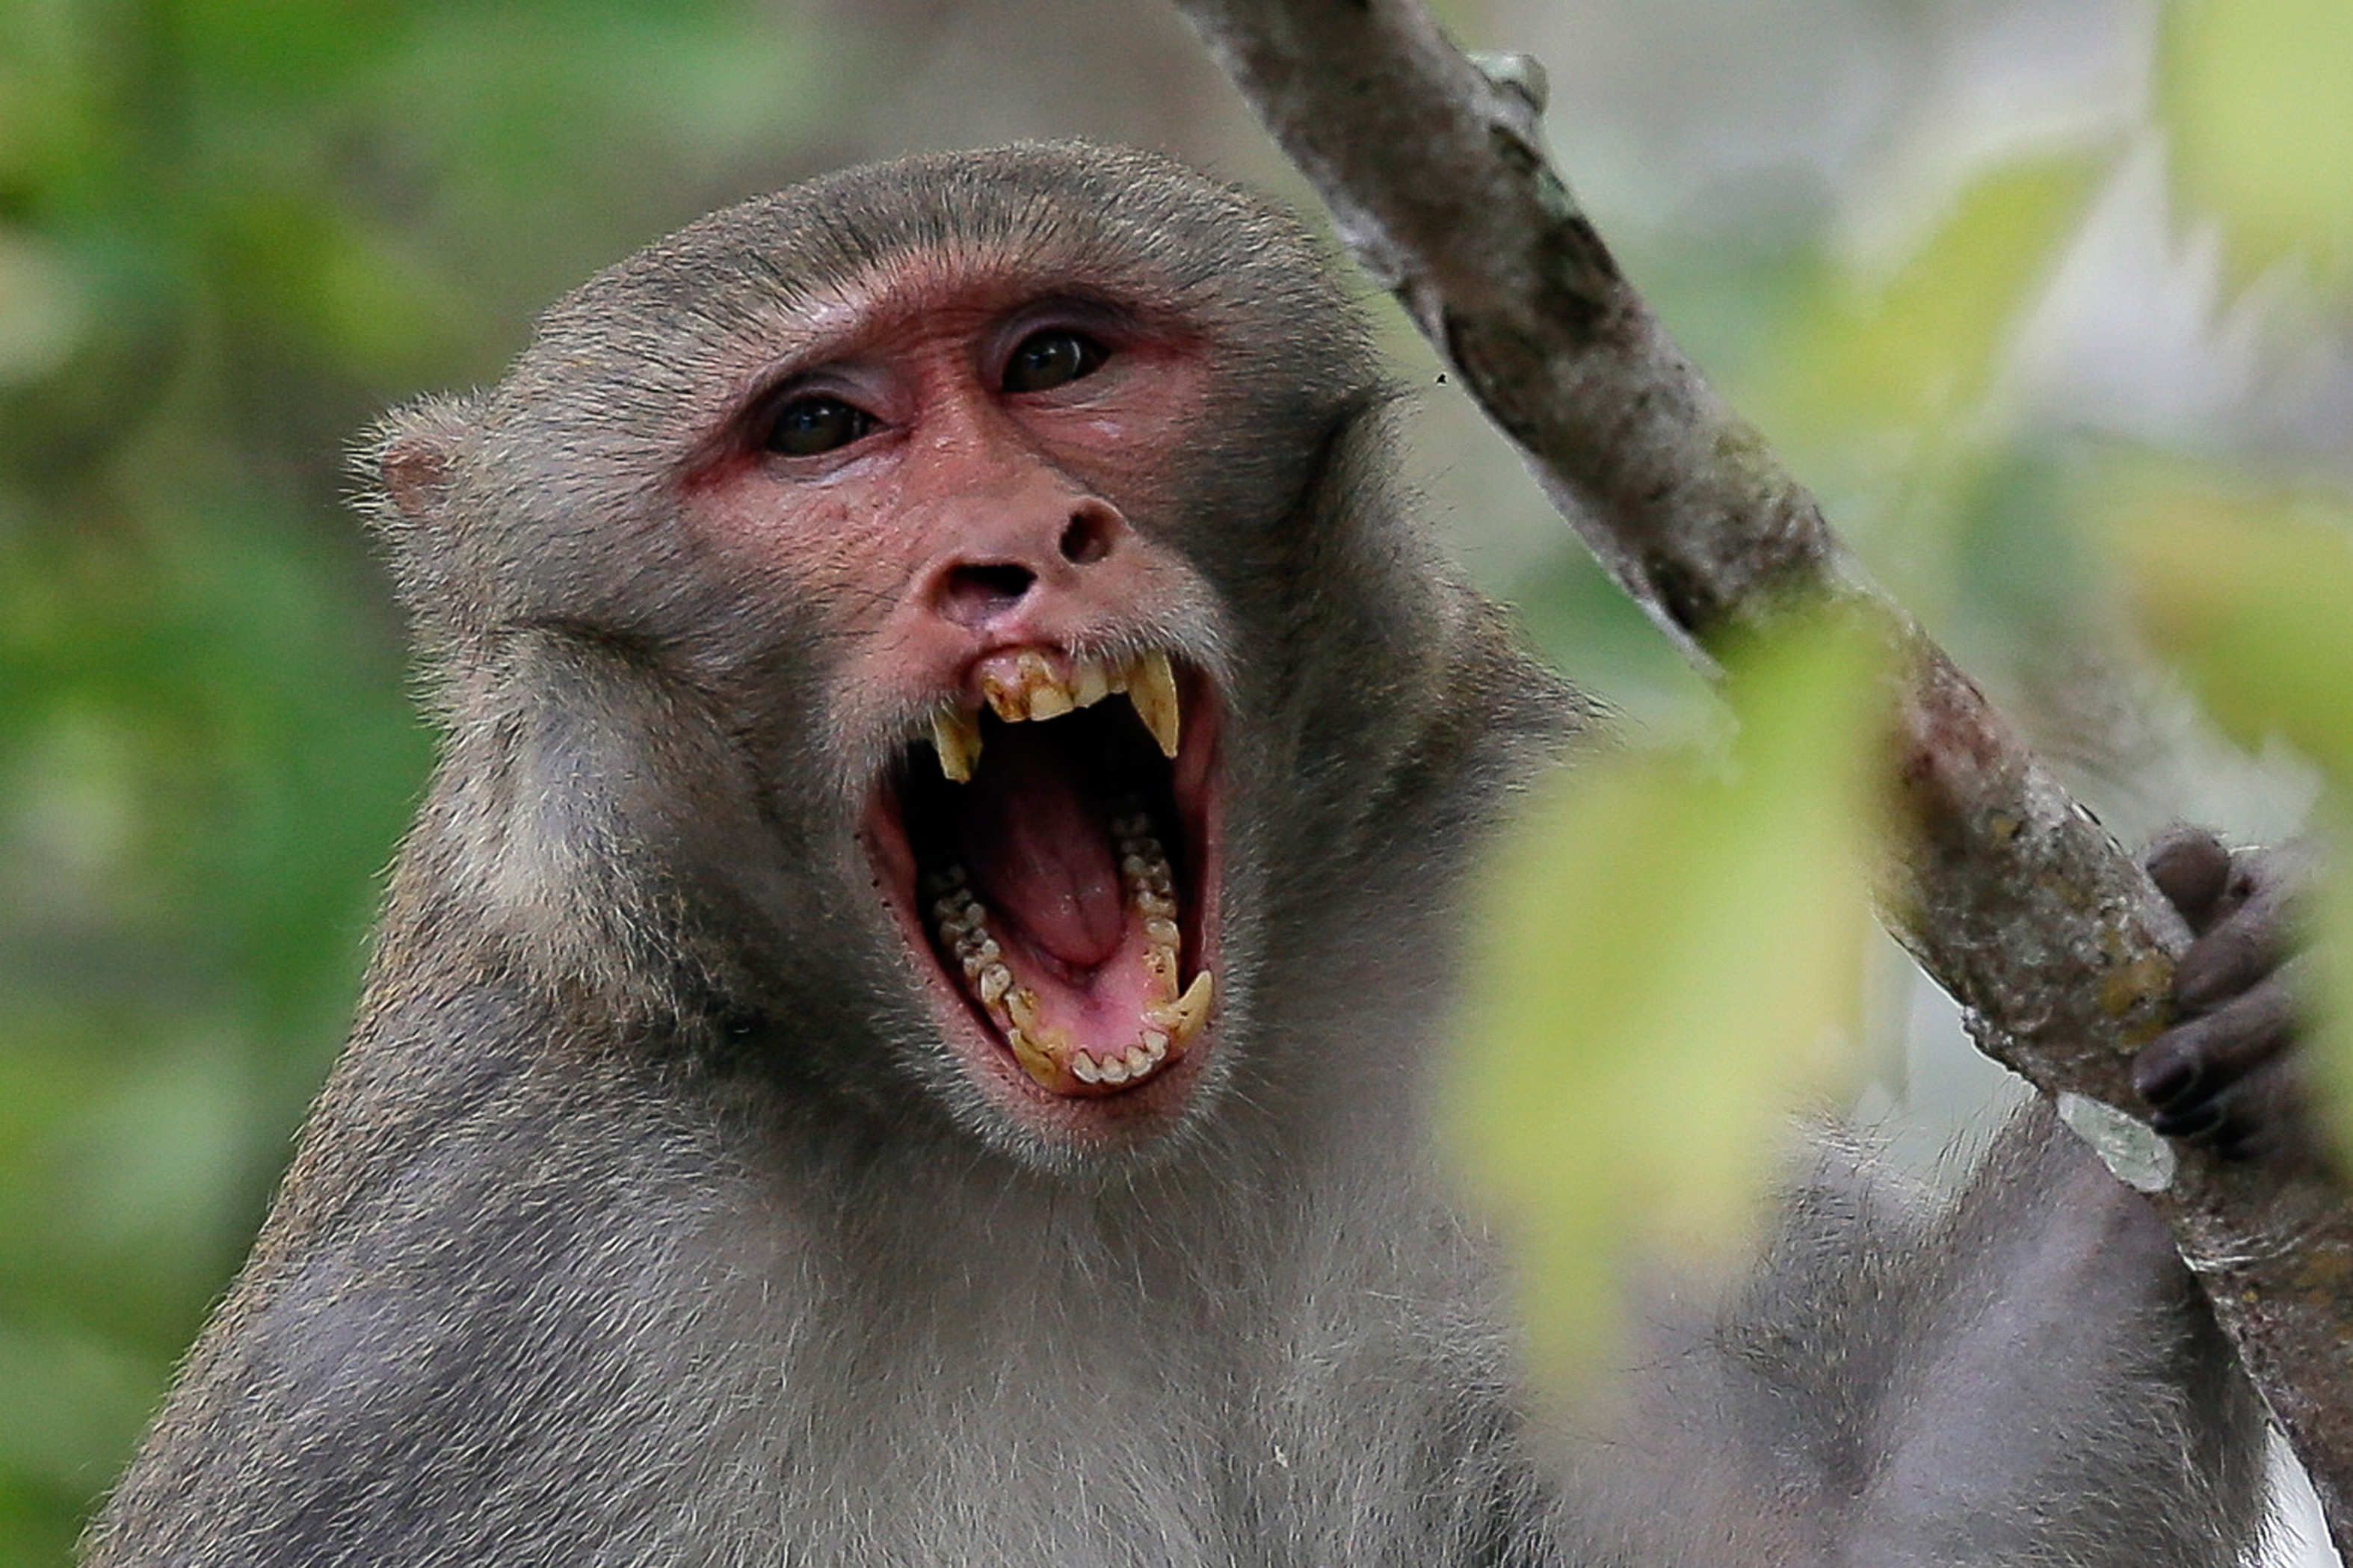 Florida looks to remove virus-excreting wild monkeys